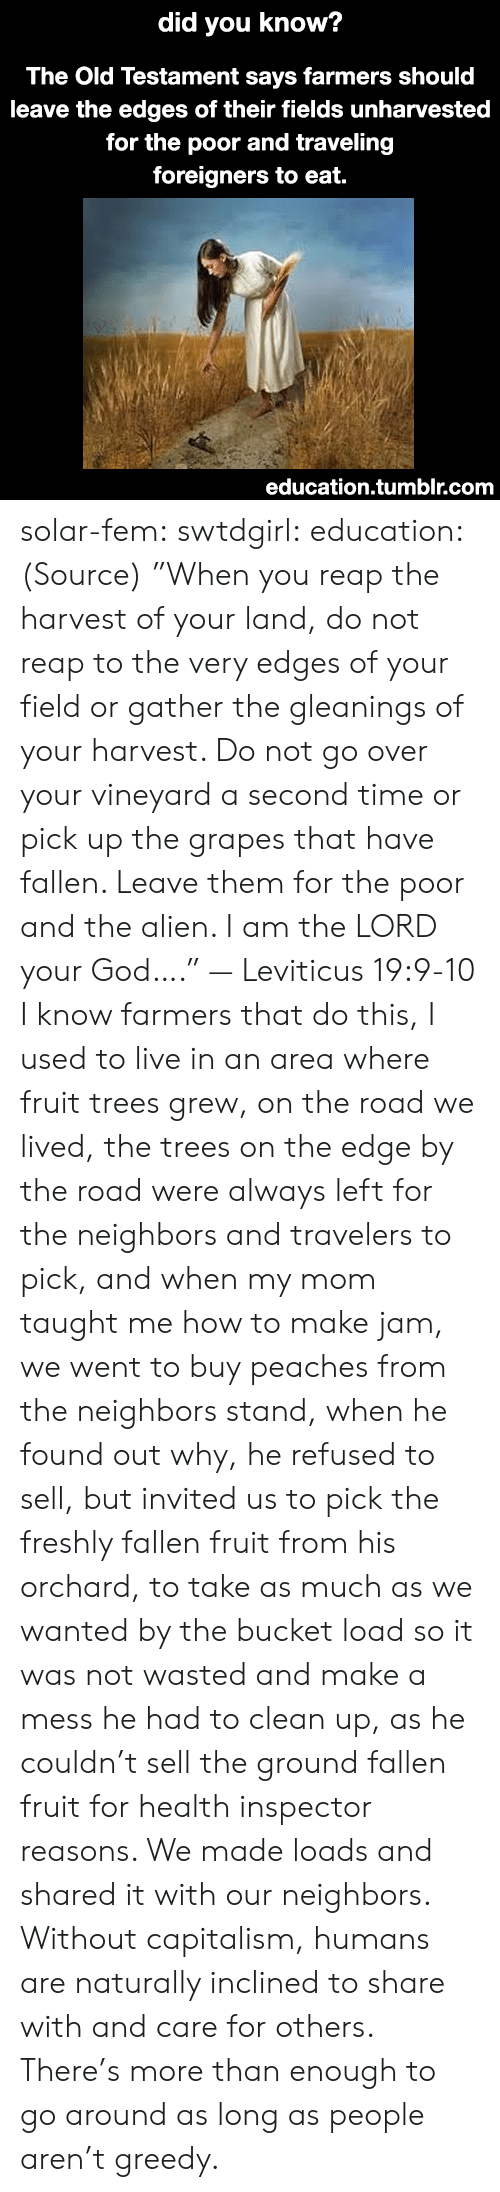 """jam: did  you know?  The Old Testament says farmers should  leave the edges of their fields unharvested  for the poor and traveling  foreigners to eat.  education.tumblr.com solar-fem:  swtdgirl:  education:   (Source) """"When you reap the harvest of your land, do not reap to the very edges of your field or gather the gleanings of your harvest. Do not go over your vineyard a second time or pick up the grapes that have fallen. Leave them for the poor and the alien. I am the LORD your God…."""" — Leviticus 19:9-10     I know farmers that do this, I used to live in an area where fruit trees grew, on the road we lived, the trees on the edge by the road were always left for the neighbors and travelers to pick, and when my mom taught me how to make jam, we went to buy peaches from the neighbors stand, when he found out why, he refused to sell, but invited us to pick the freshly fallen fruit from his orchard, to take as much as we wanted by the bucket load so it was not wasted and make a mess he had to clean up, as he couldn't sell the ground fallen fruit for health inspector reasons. We made loads and shared it with our neighbors.  Without capitalism, humans are naturally inclined to share with and care for others. There's more than enough to go around as long as people aren't greedy."""